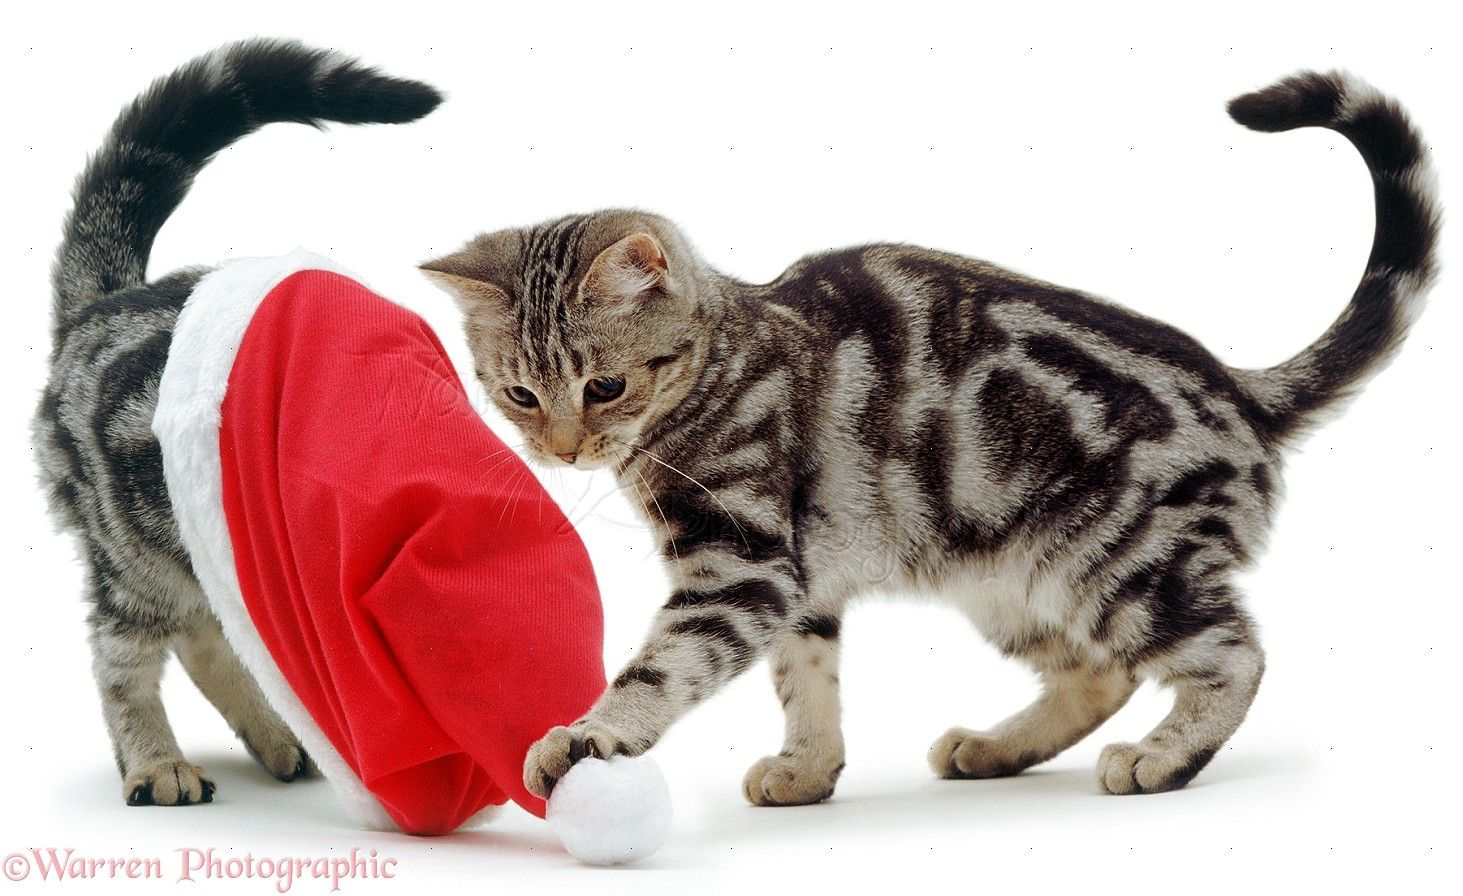 cats playing | WP01498 Silver tabby kittens playing with a Father Christmas hat.